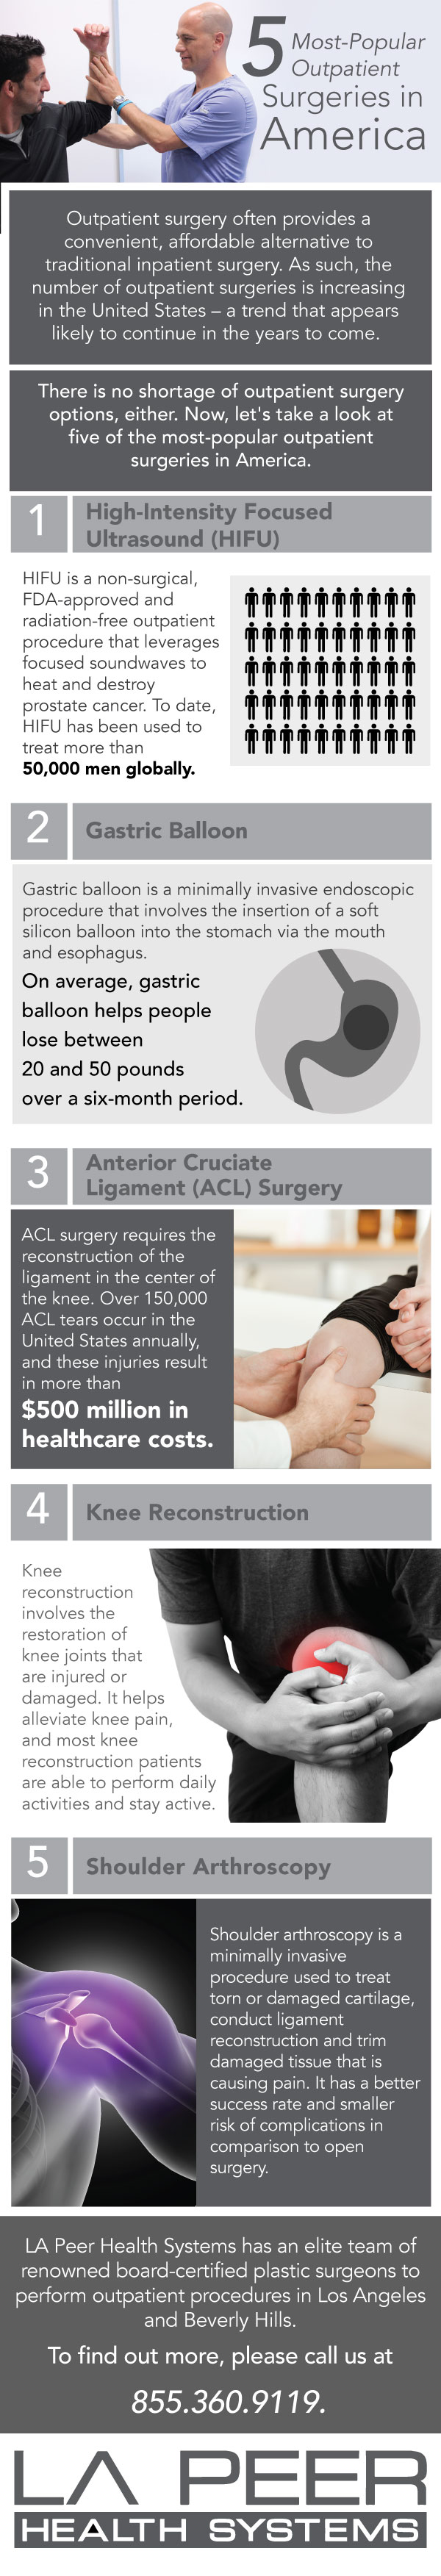 5 Most Popular Outpatient Surgeries in America